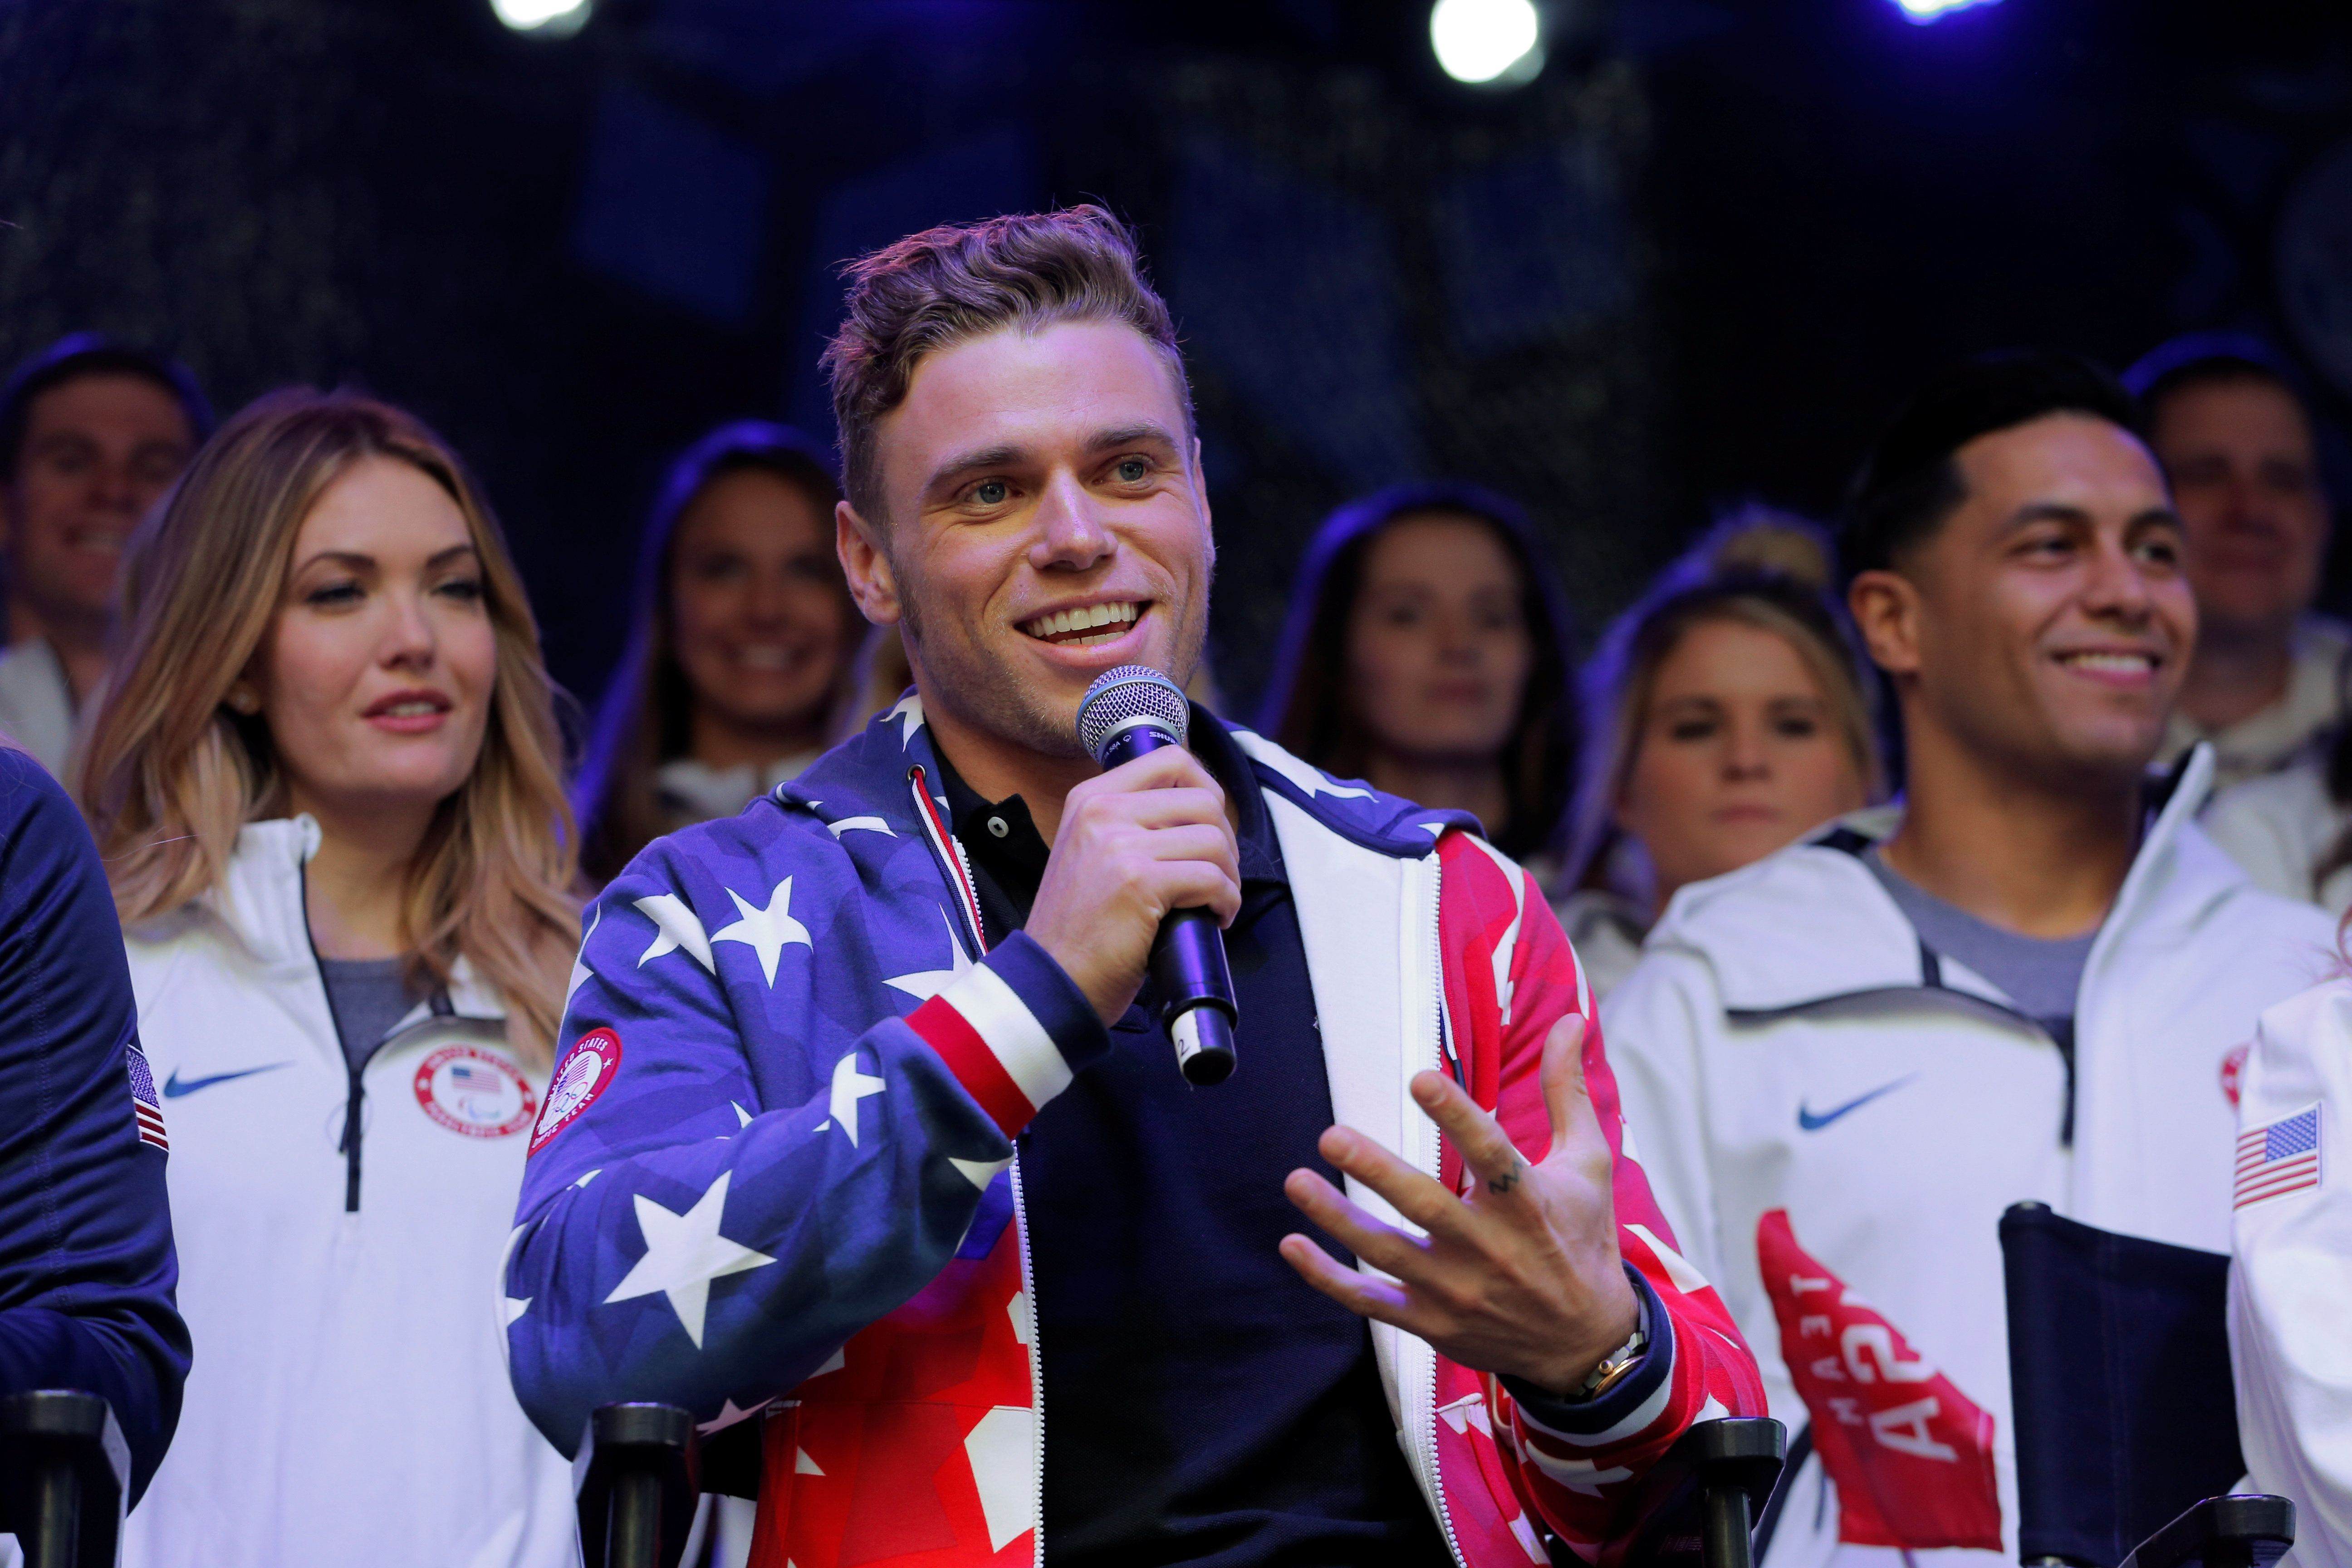 Olympian freestyle skier Gus Kenworthy speaks during an event in Times Square to celebrate 100 days from the start of the PyeongChang 2018 Olympic Games in South Korea, in New York, U.S., November 1, 2017.  REUTERS/Lucas Jackson